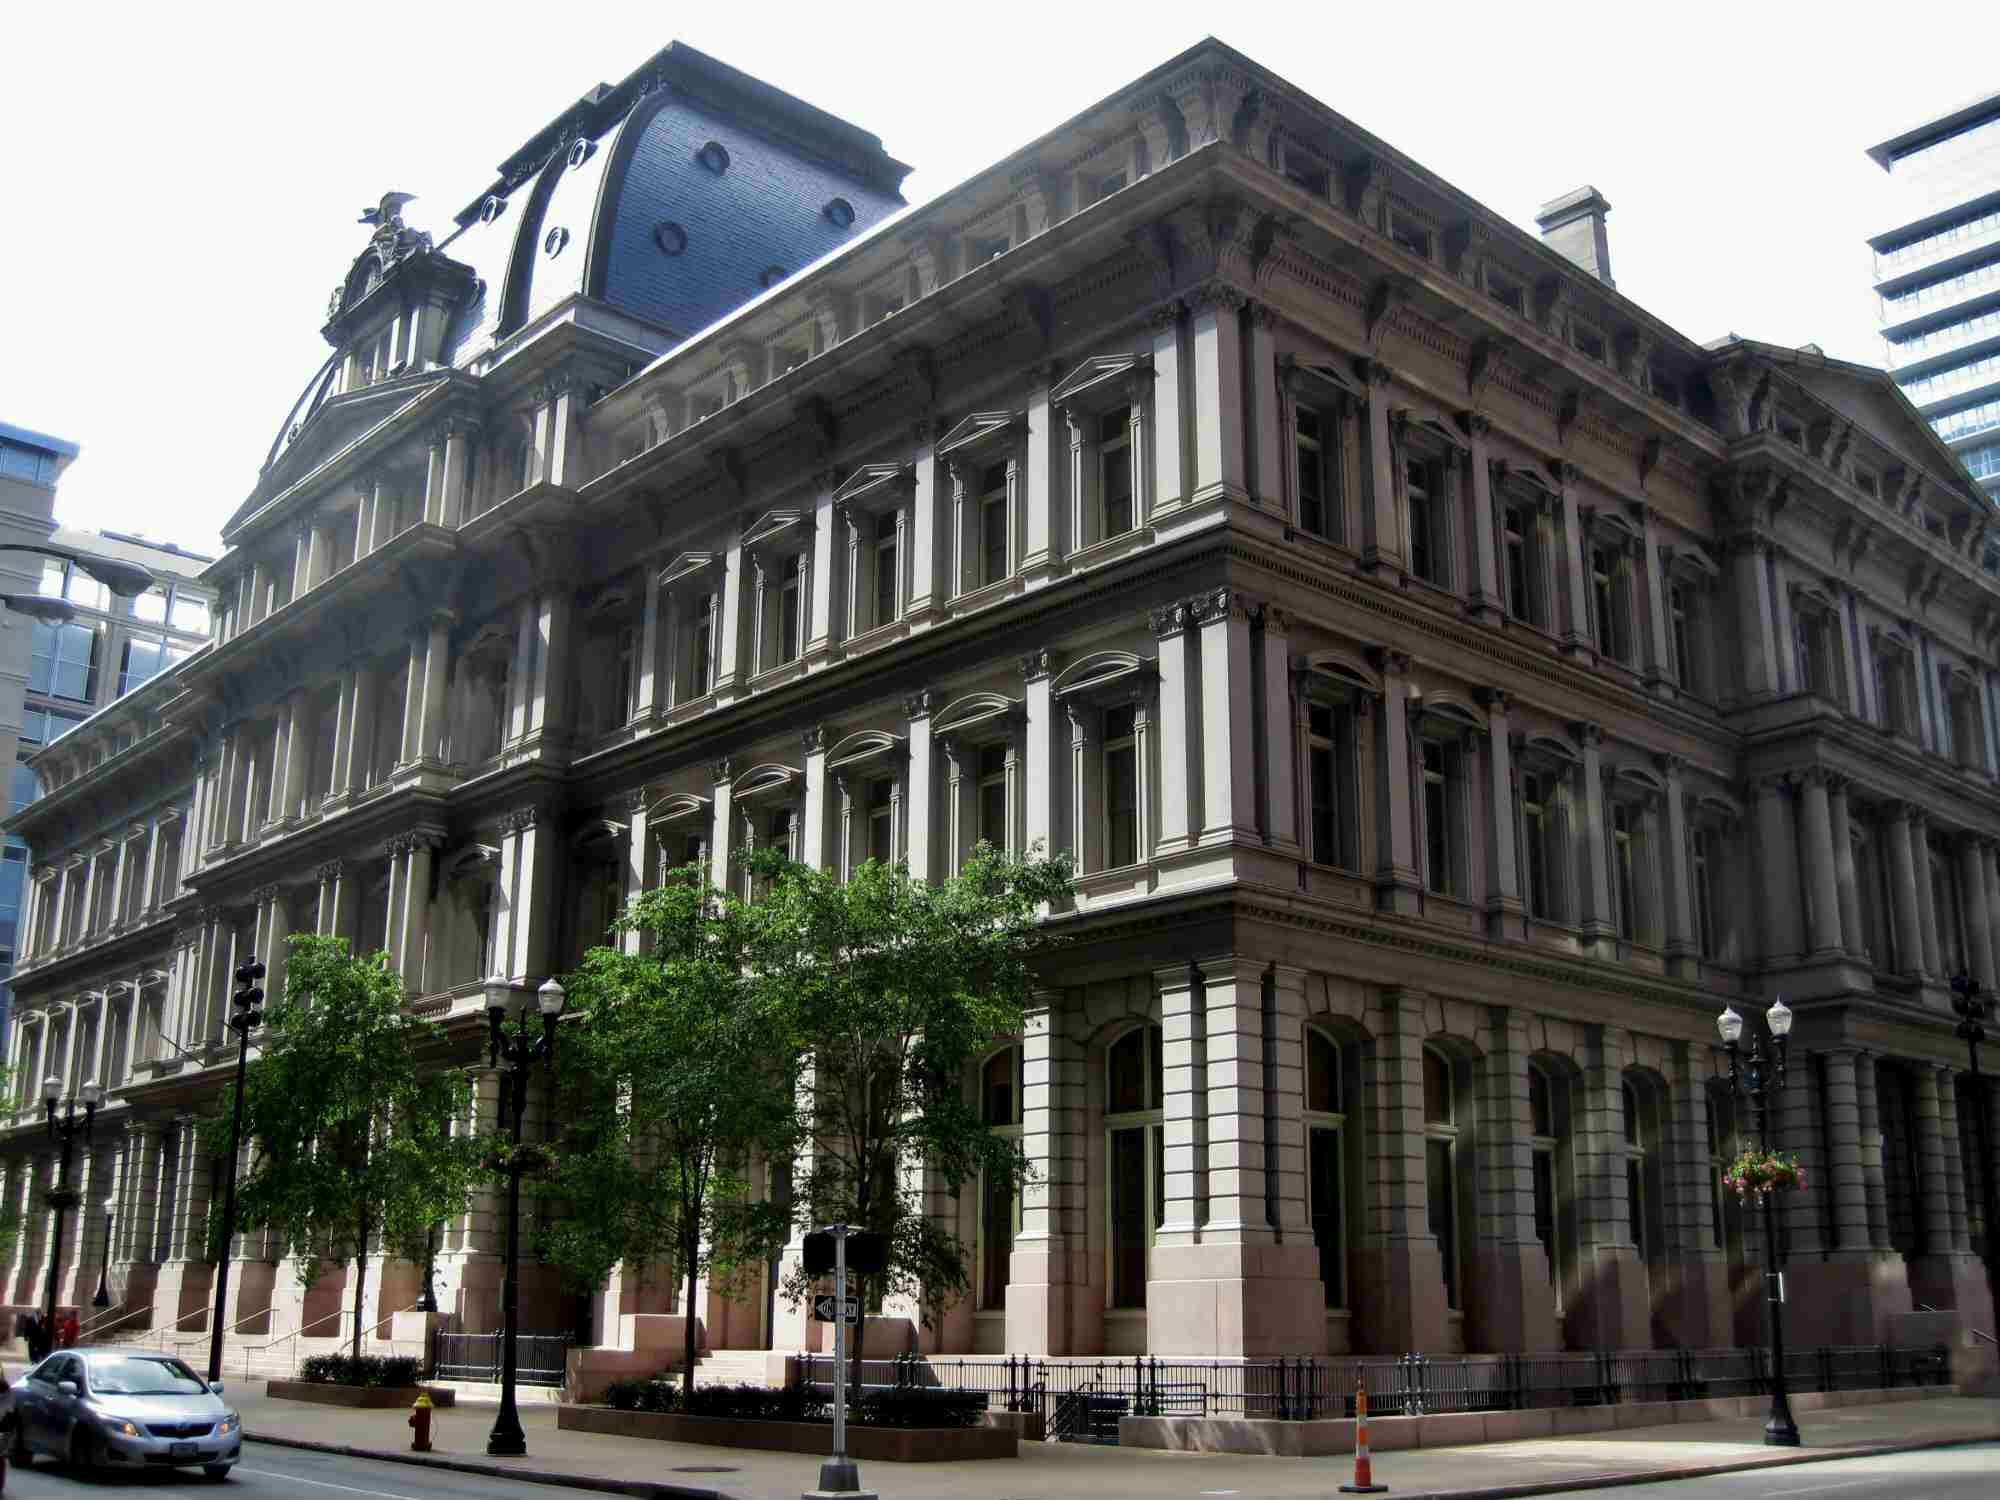 Photograph of the old four-story post office in downtown St. Louis, Missouri.